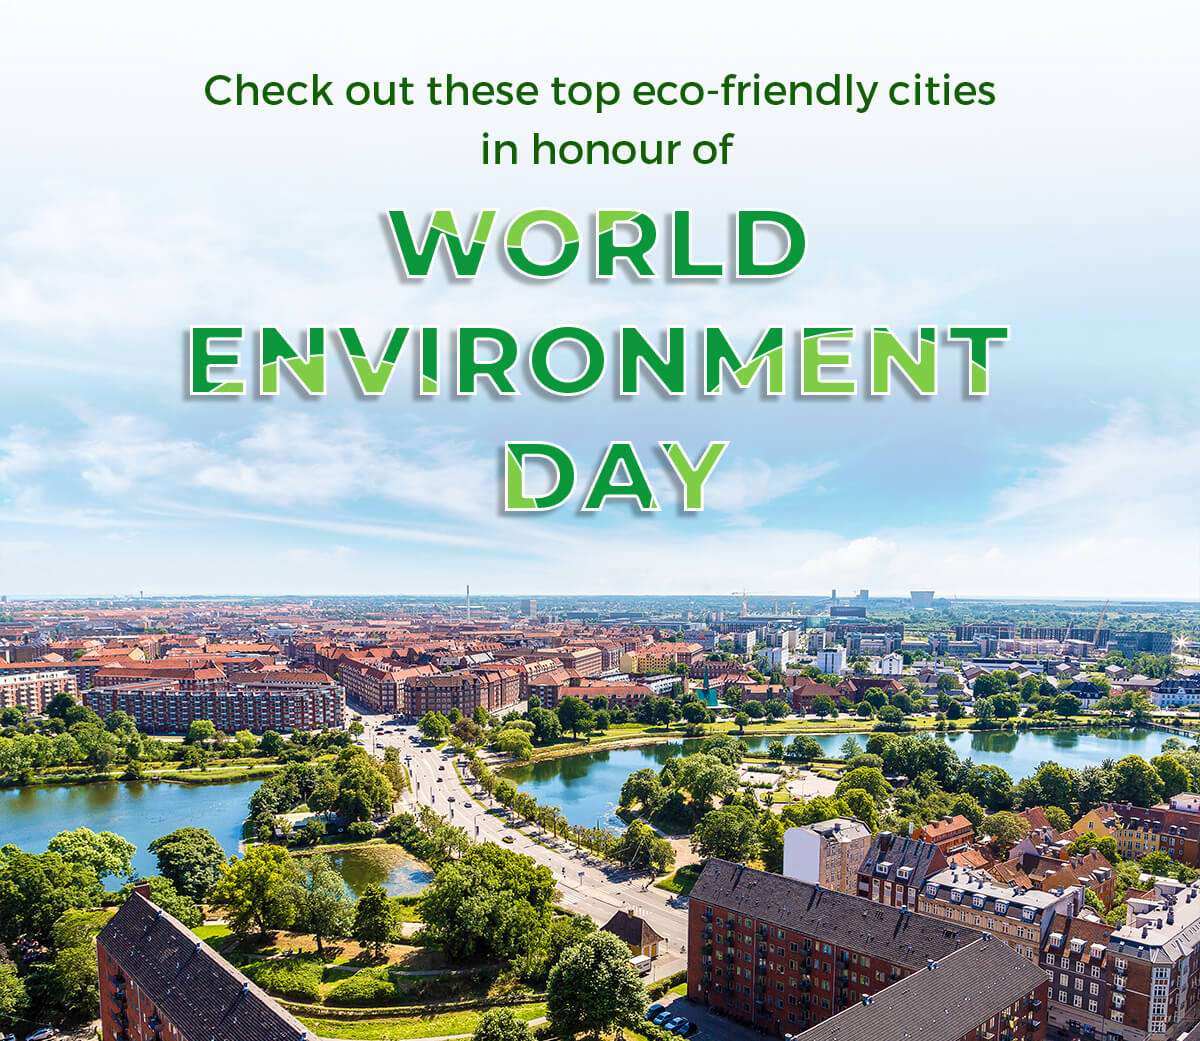 Check out these top eco-friendly cities in honour of World Environment Day